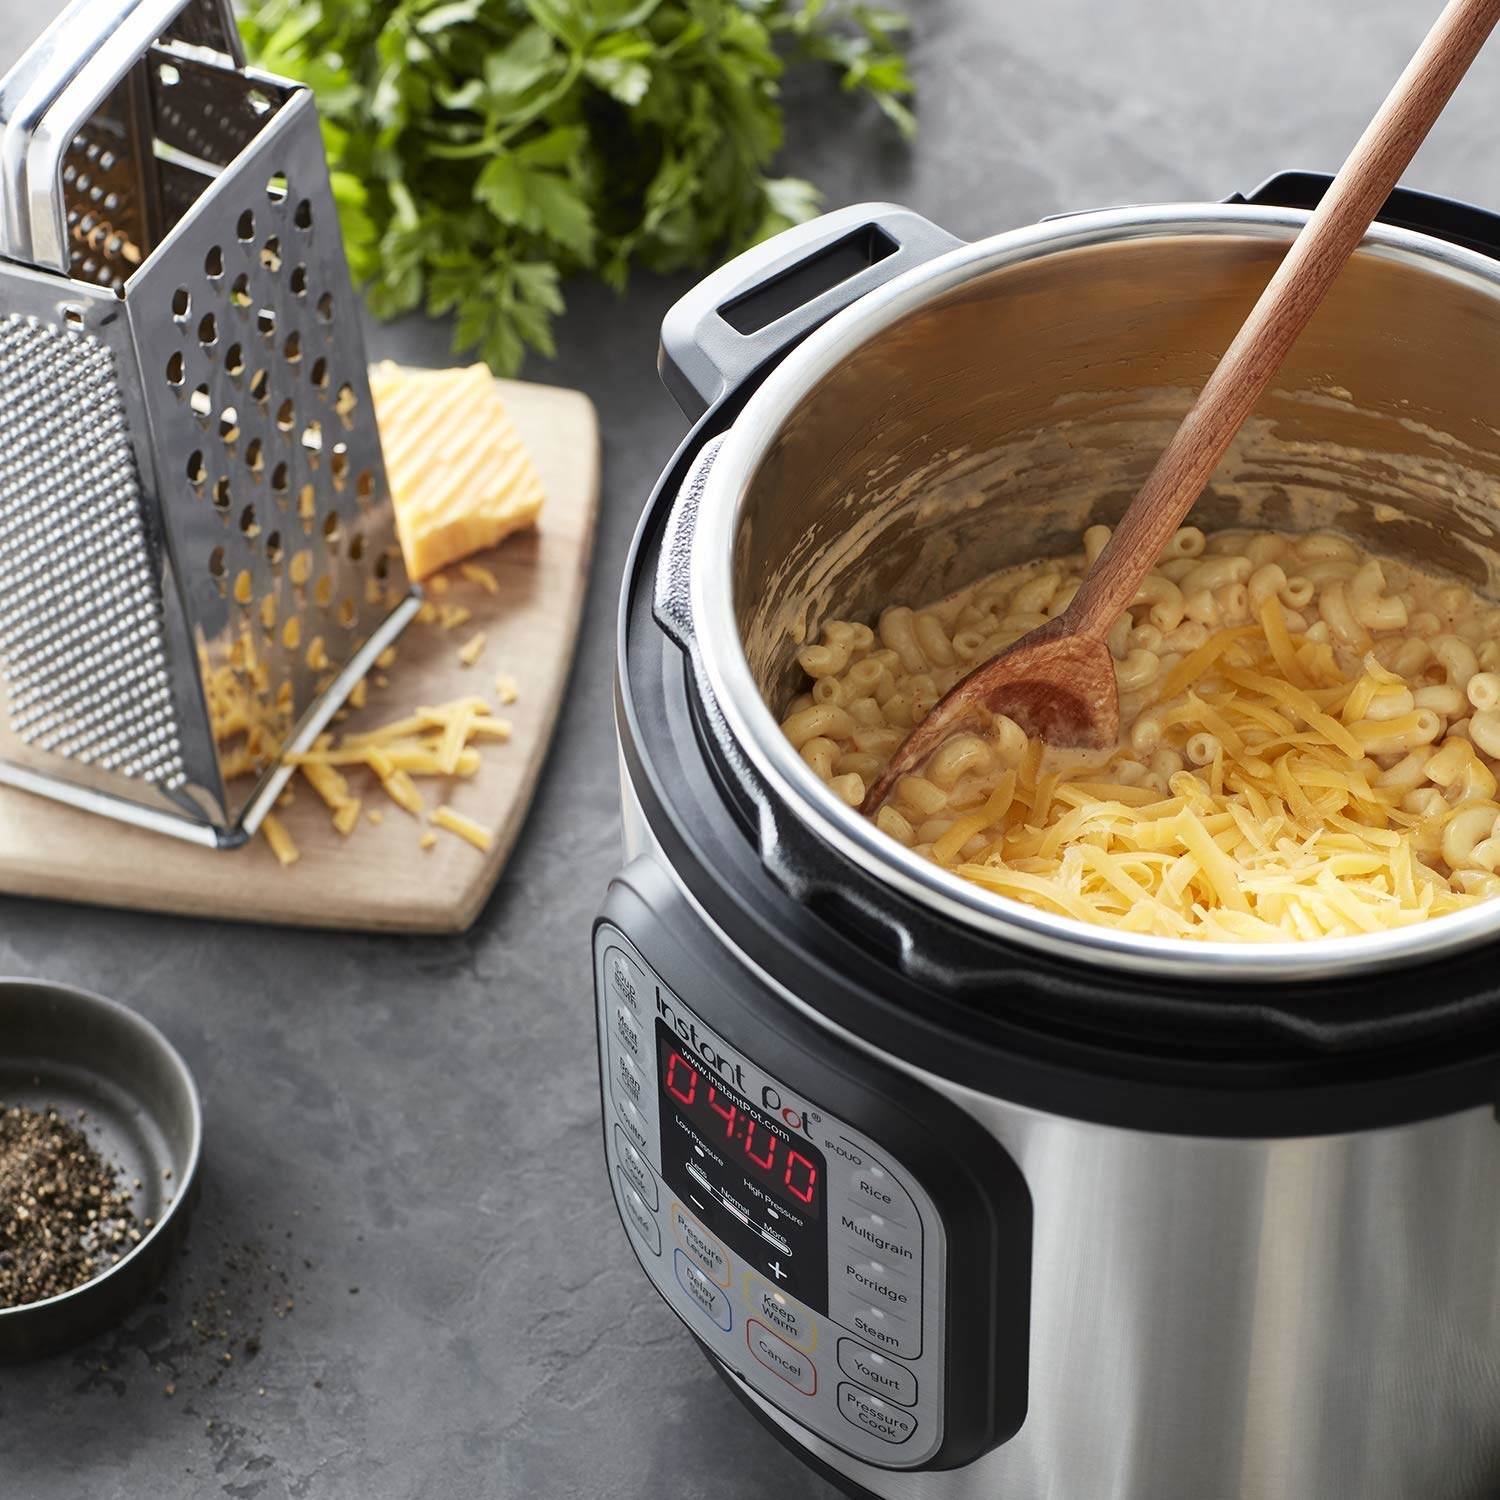 Instant Pot containing macaroni and cheese and shredder next to it